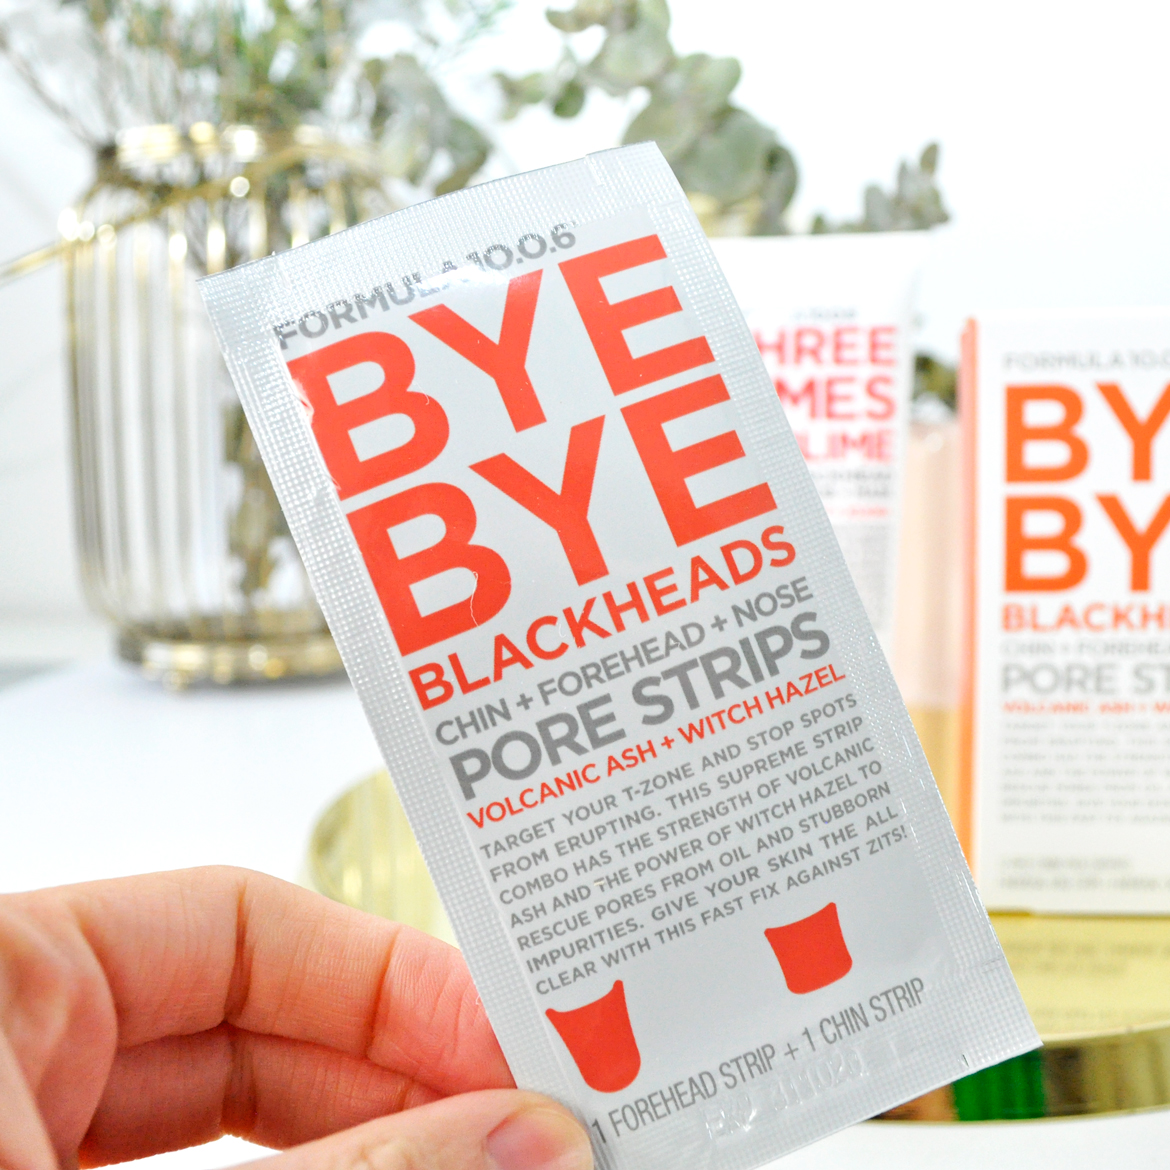 Formula 10.0.6 Bye Bye Blackheads Chin + Forehead + Nose Pore Strips